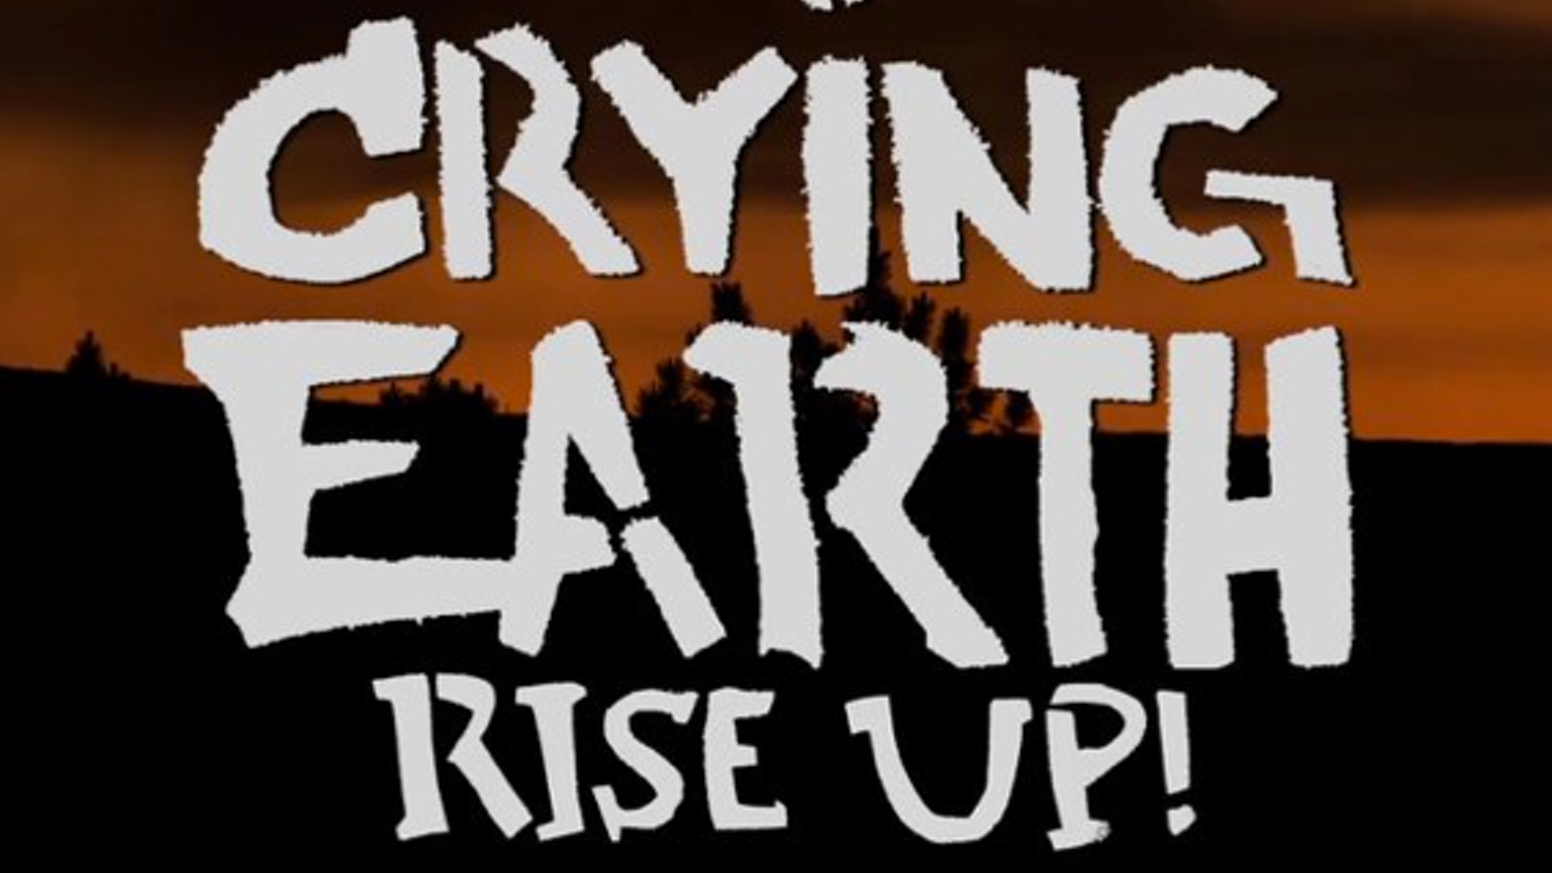 crying earth rise up a documentary work in progress by prairie